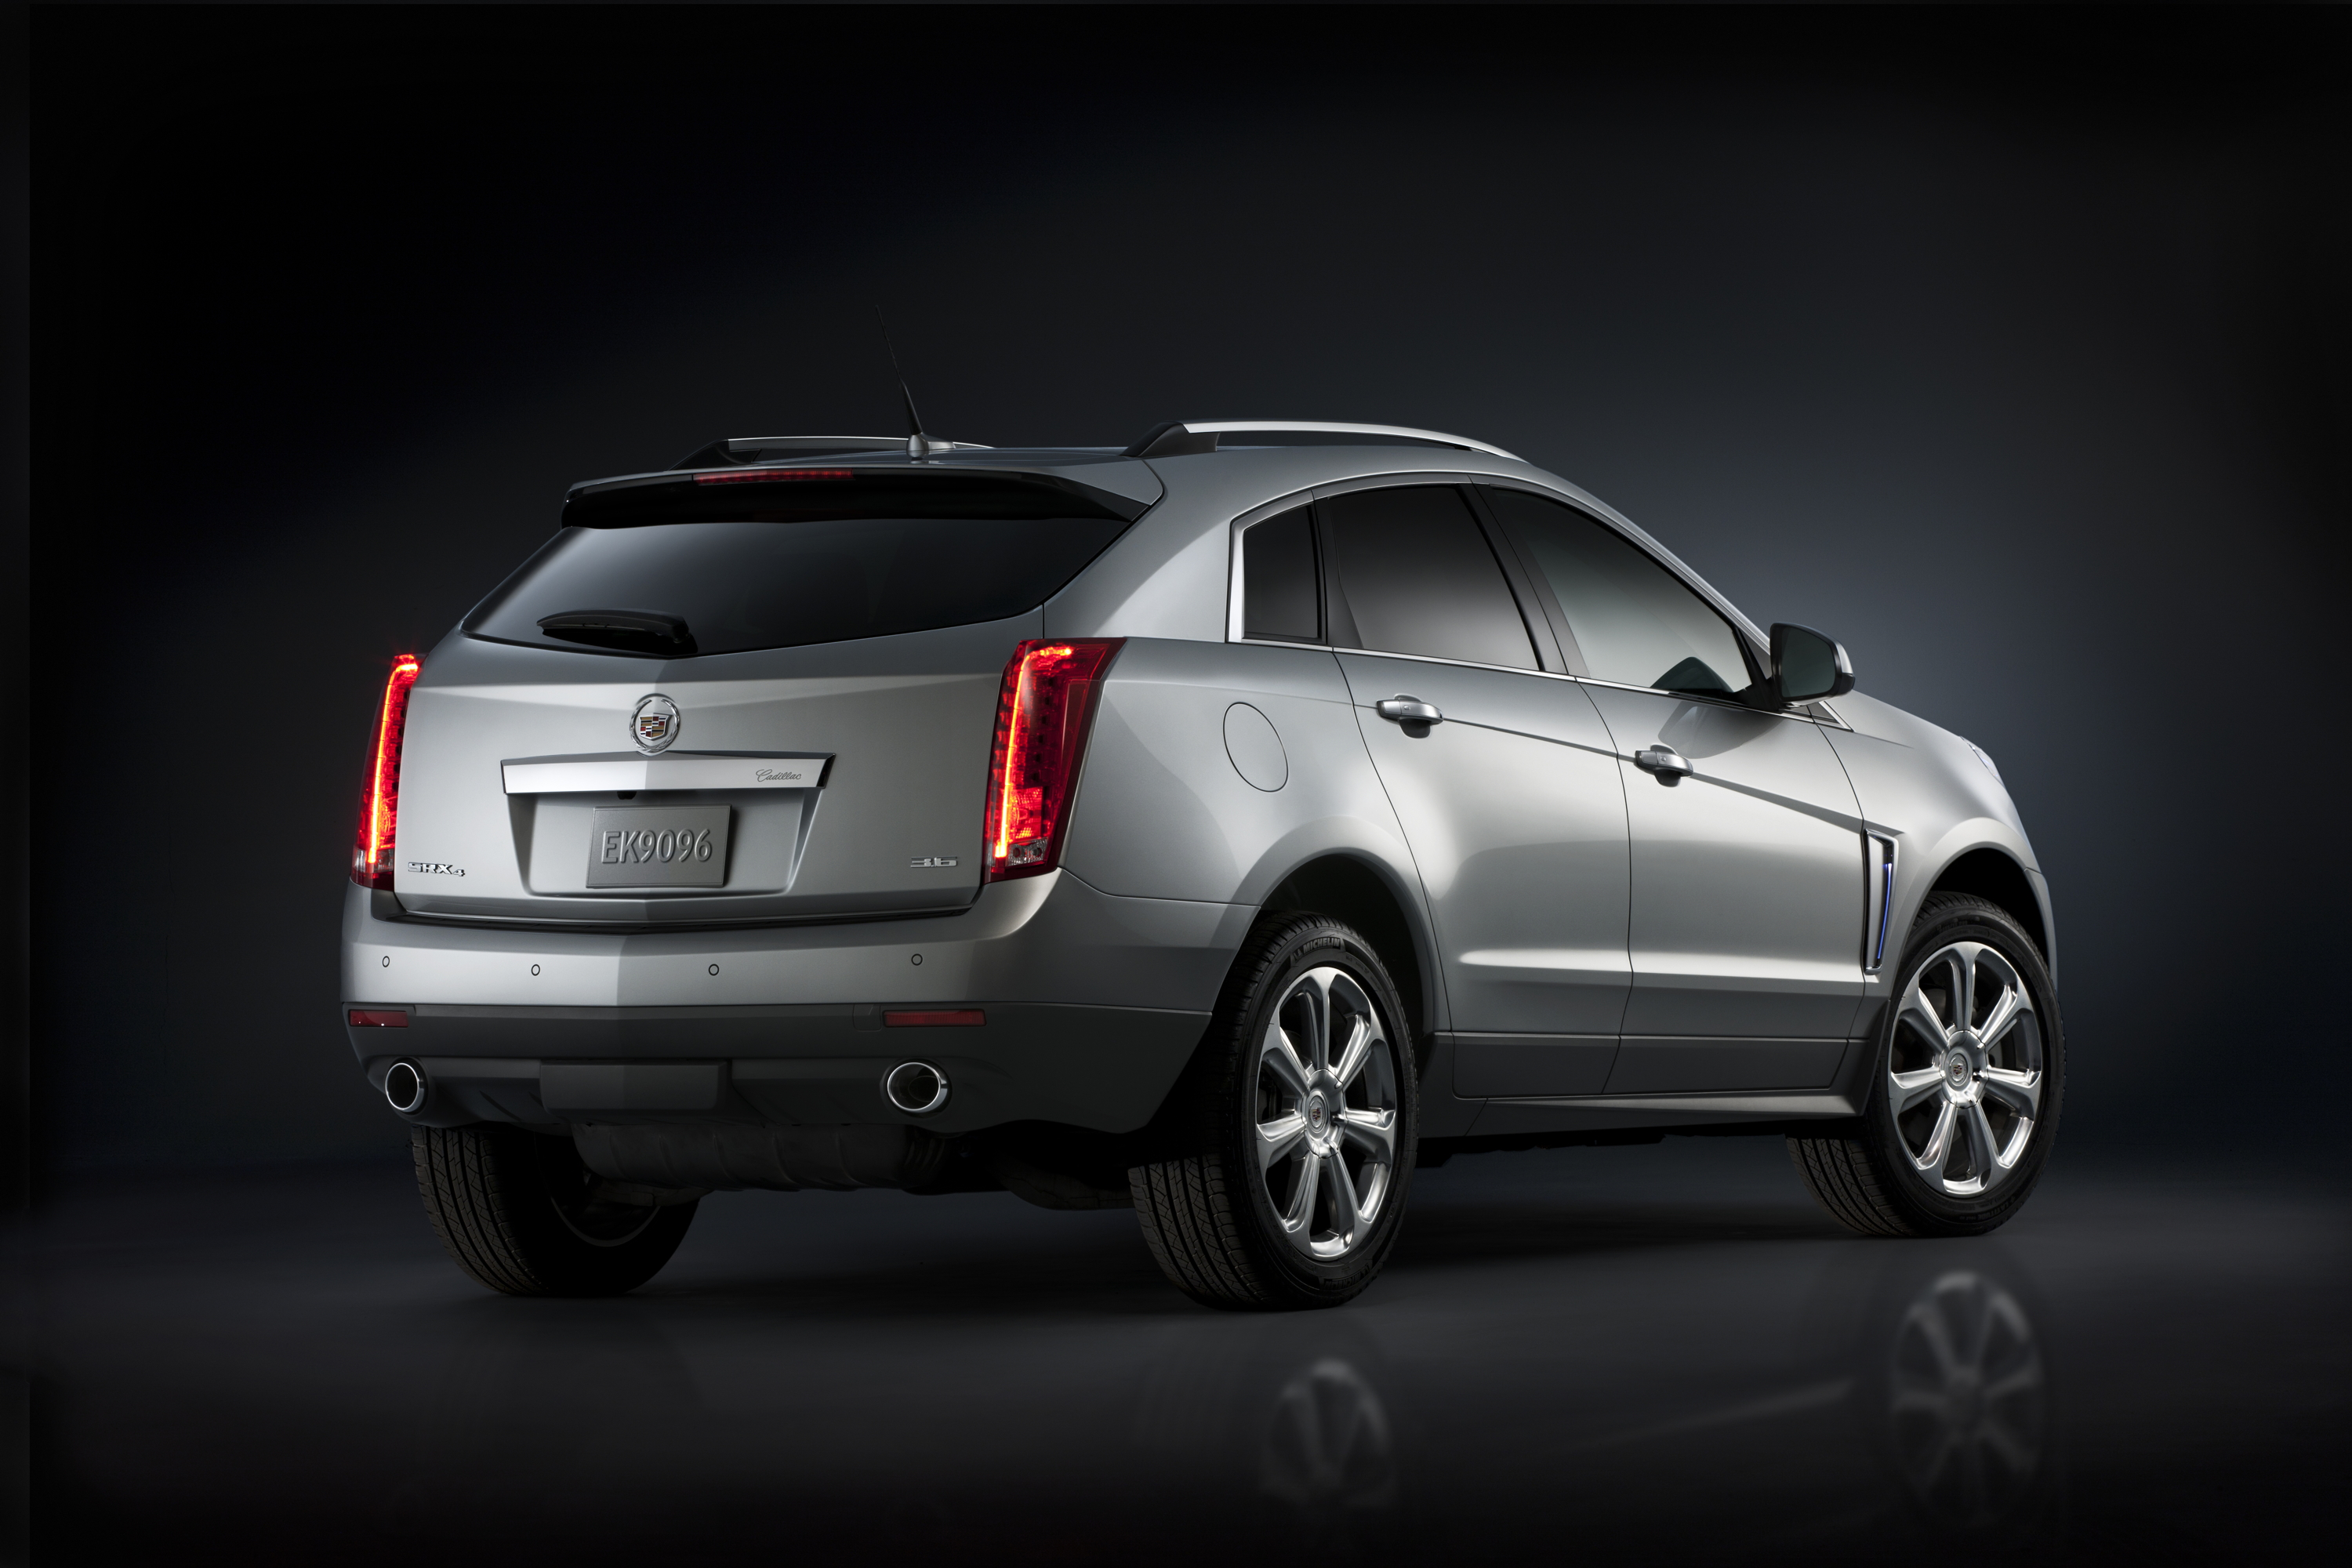 cadillac sema news fwd performance show by srx auto front dana buchman view collection suv